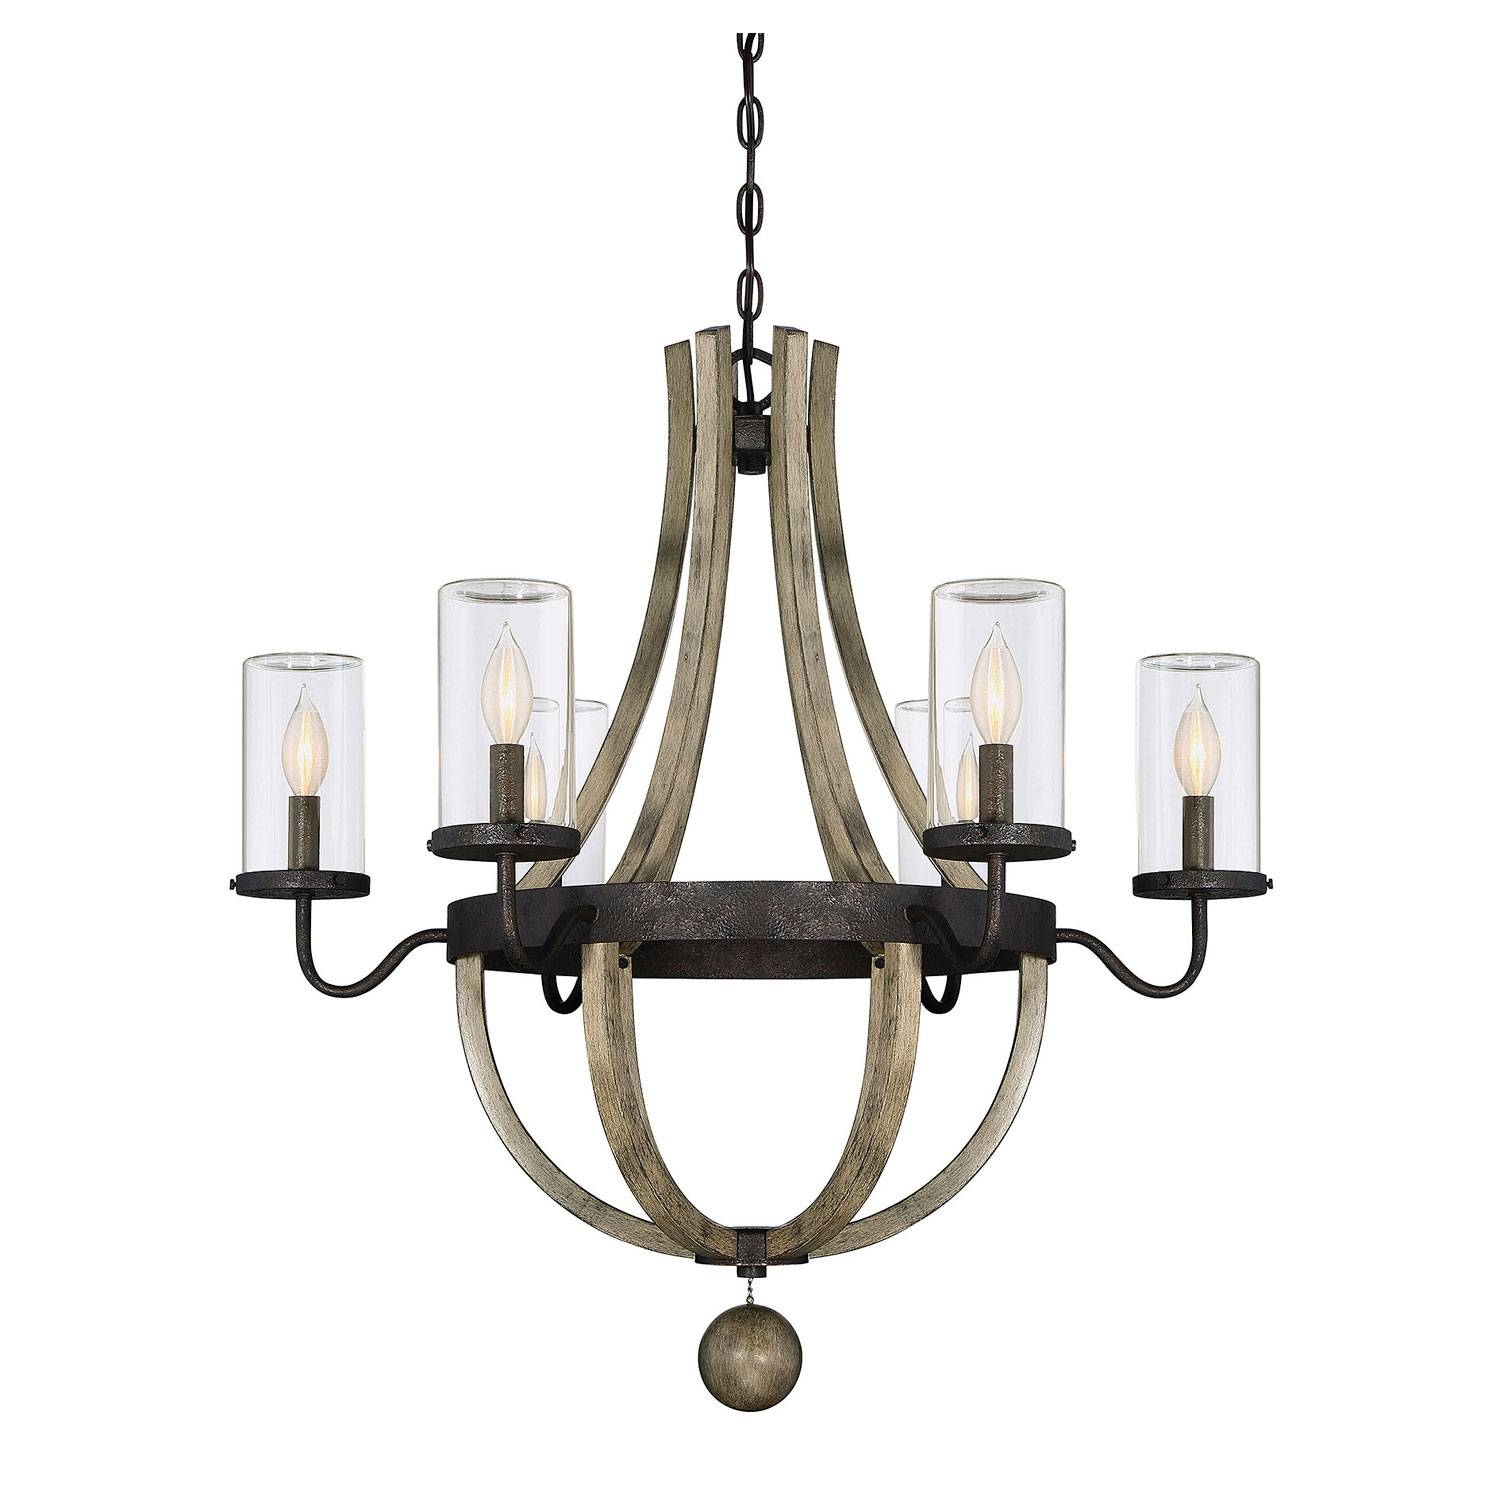 Outdoor Hanging Lights & Lighting Fixtures | Exterior Lamps intended for Hanging Lights Fixtures (Image 11 of 15)